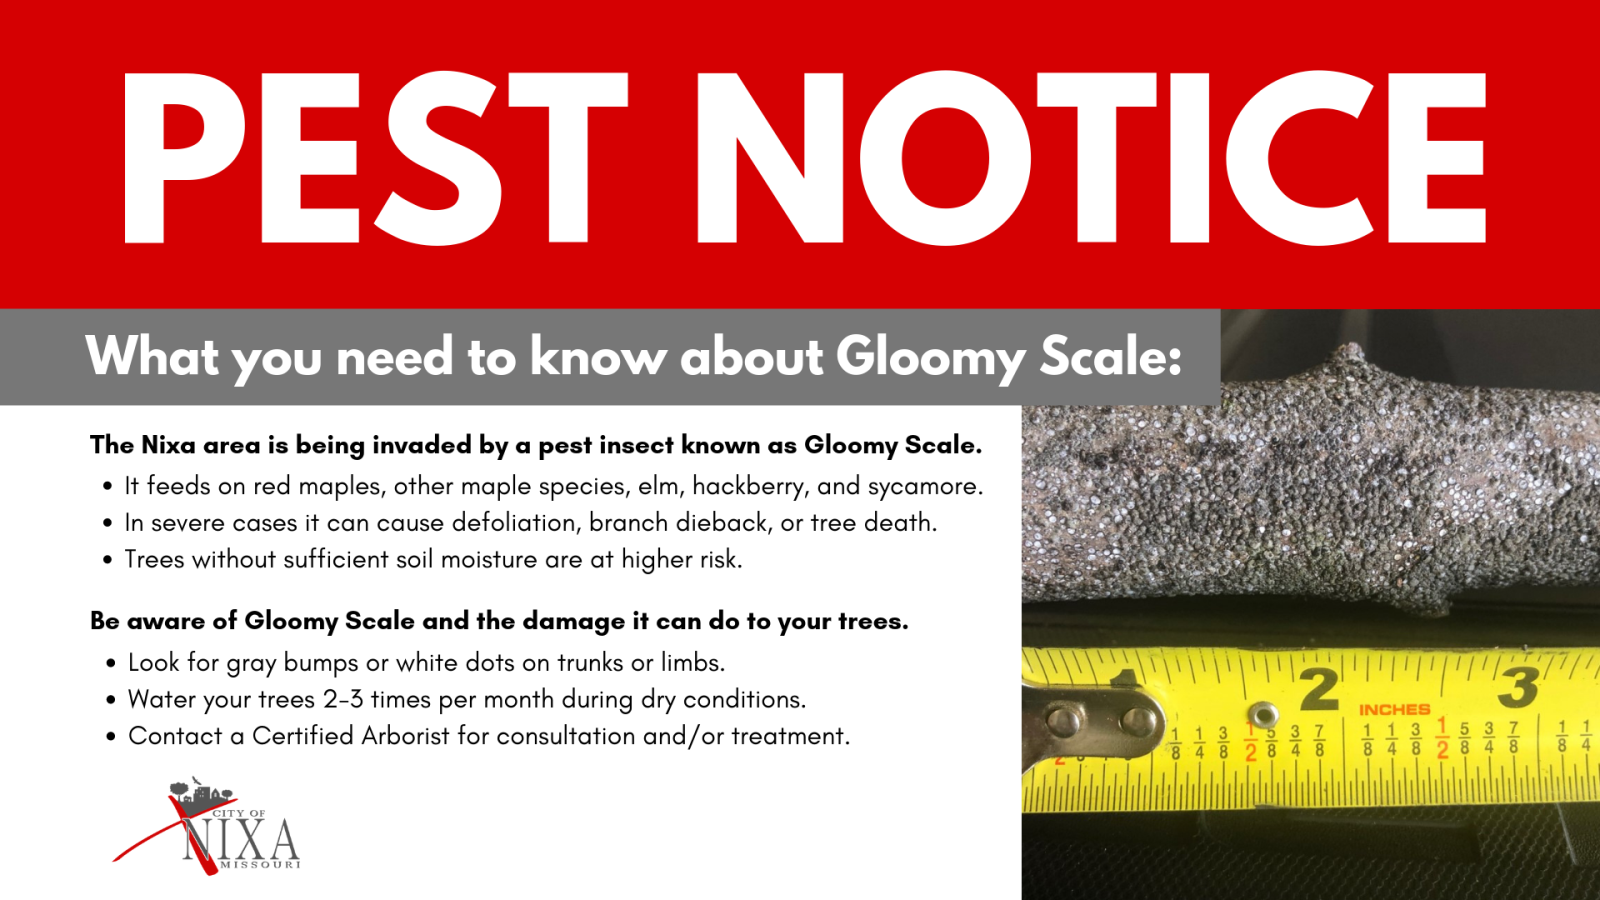 Gloomy Scale Pest Notice_16x9